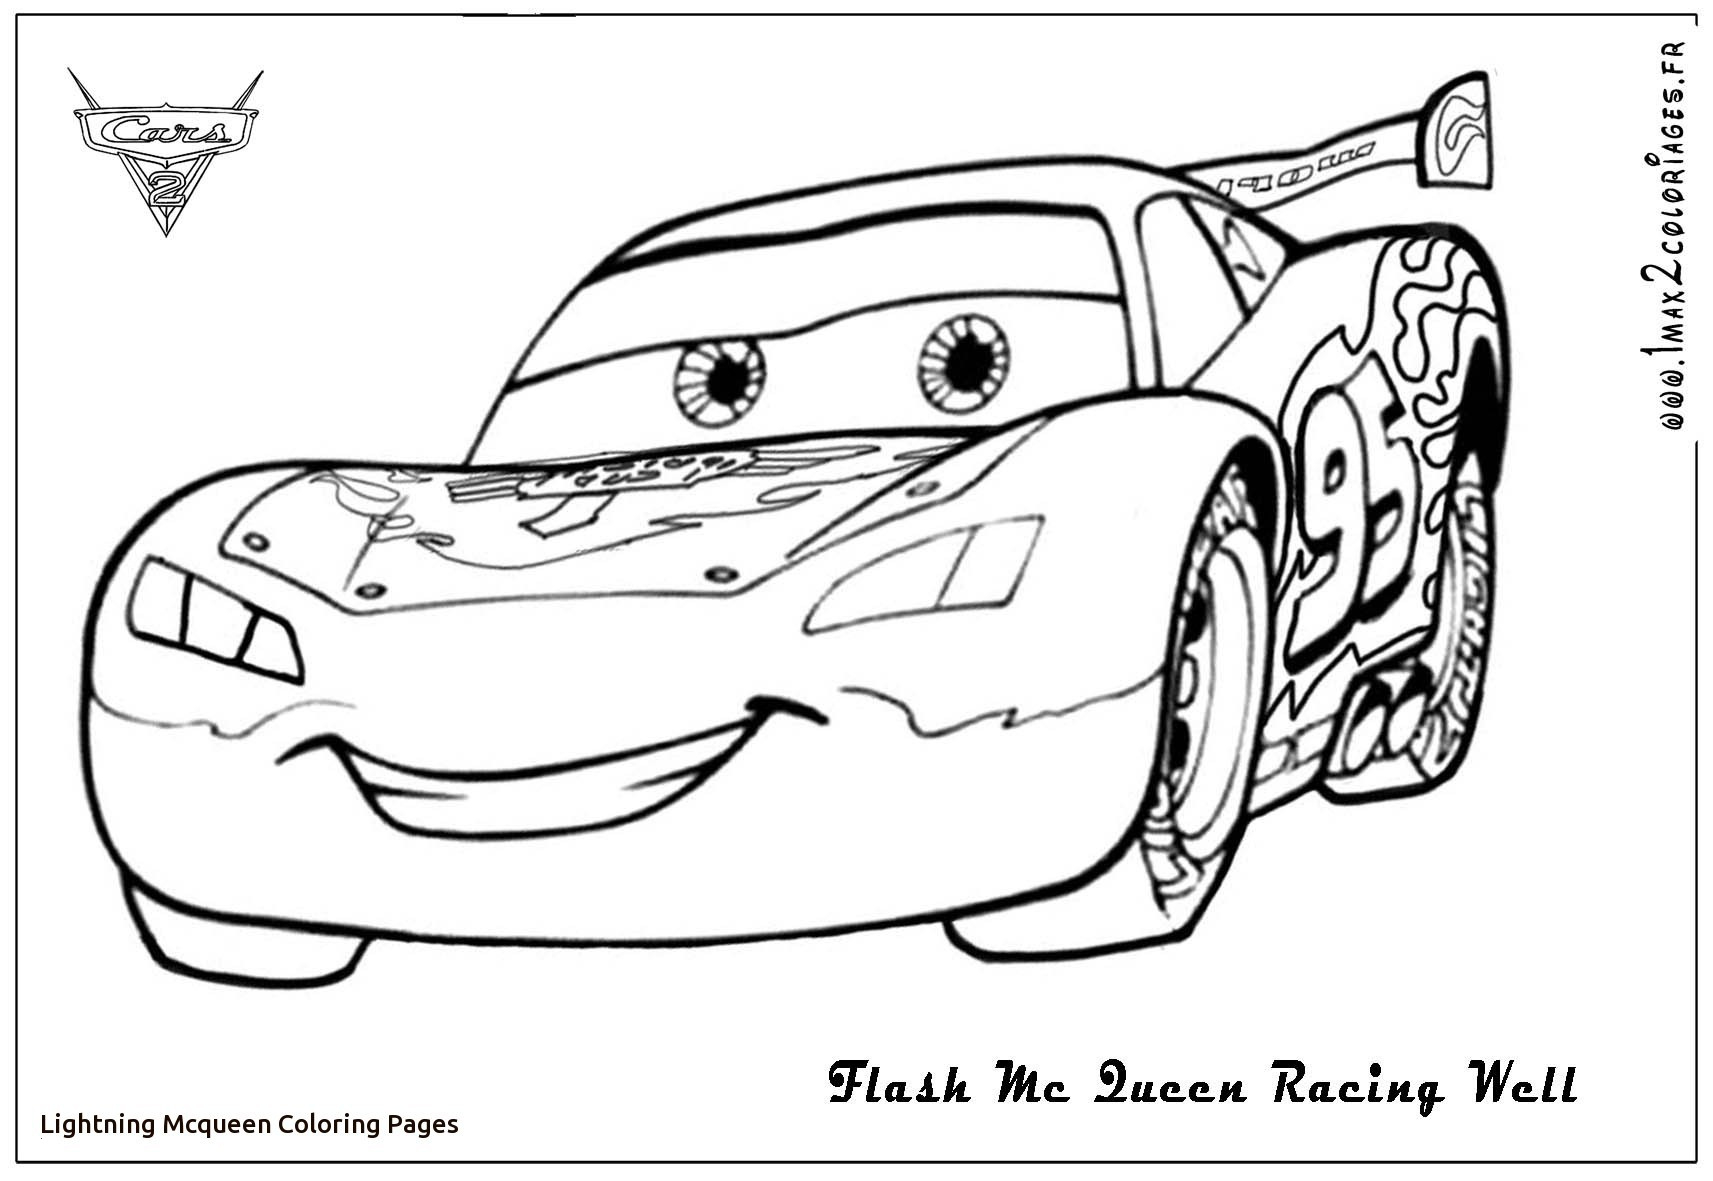 cars movie coloring pages Download-Lightning Mcqueen Free Coloring Pages Cars Movie Coloring Pages Lovable Coloring Pages Cars Fresh 11-e